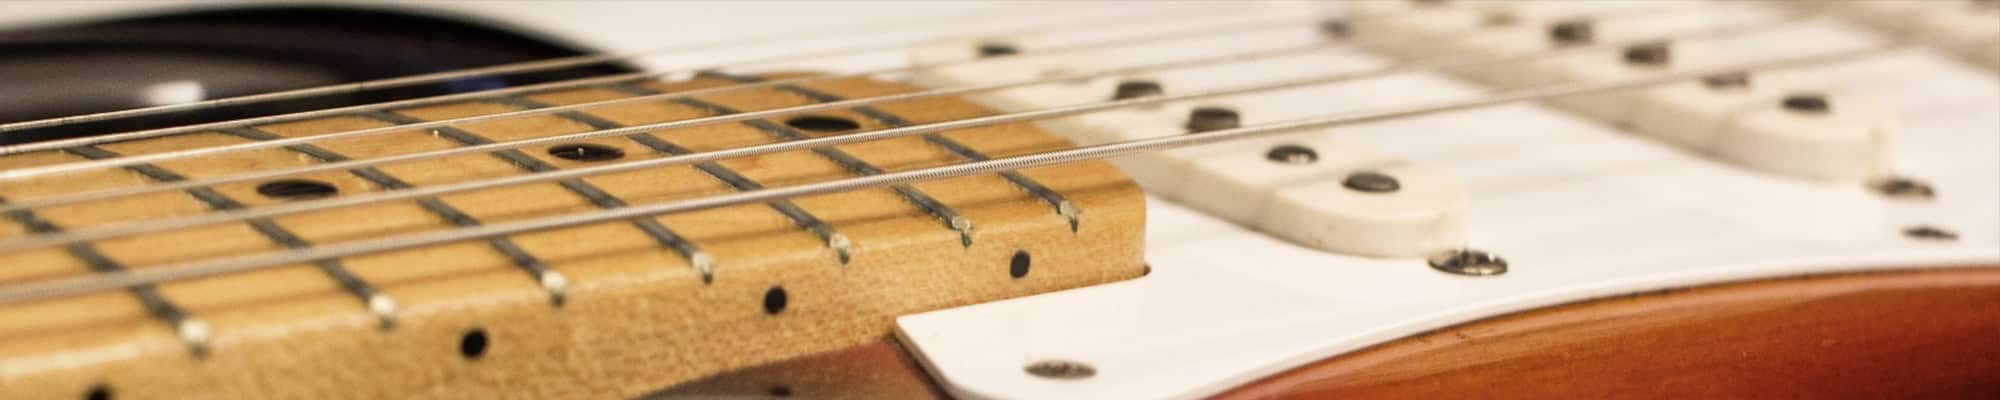 What To Know After Buying a Stratocaster: Three Luthiers